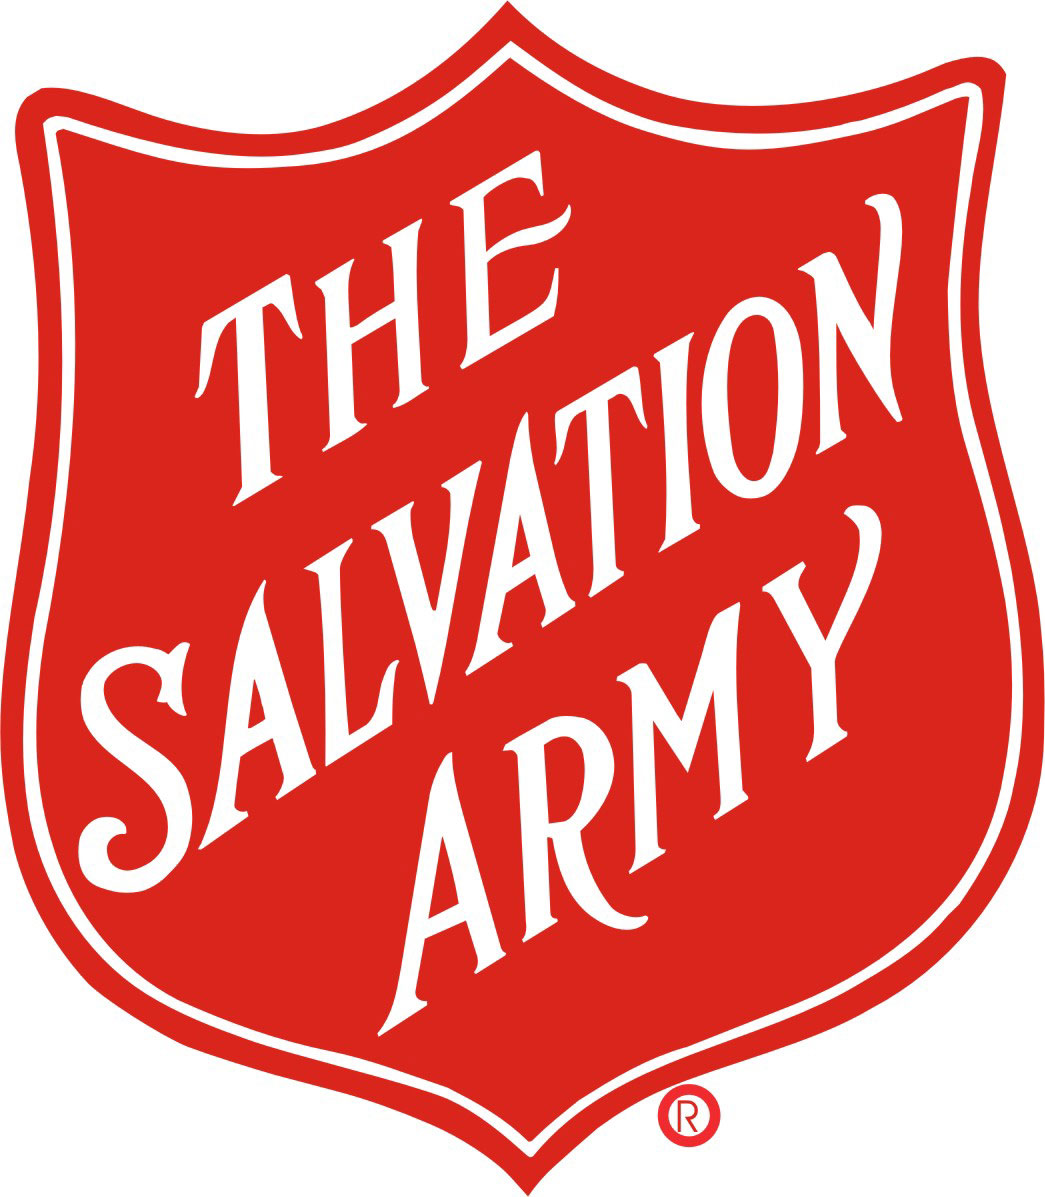 Salvation army clipart 1 » Clipart Station.